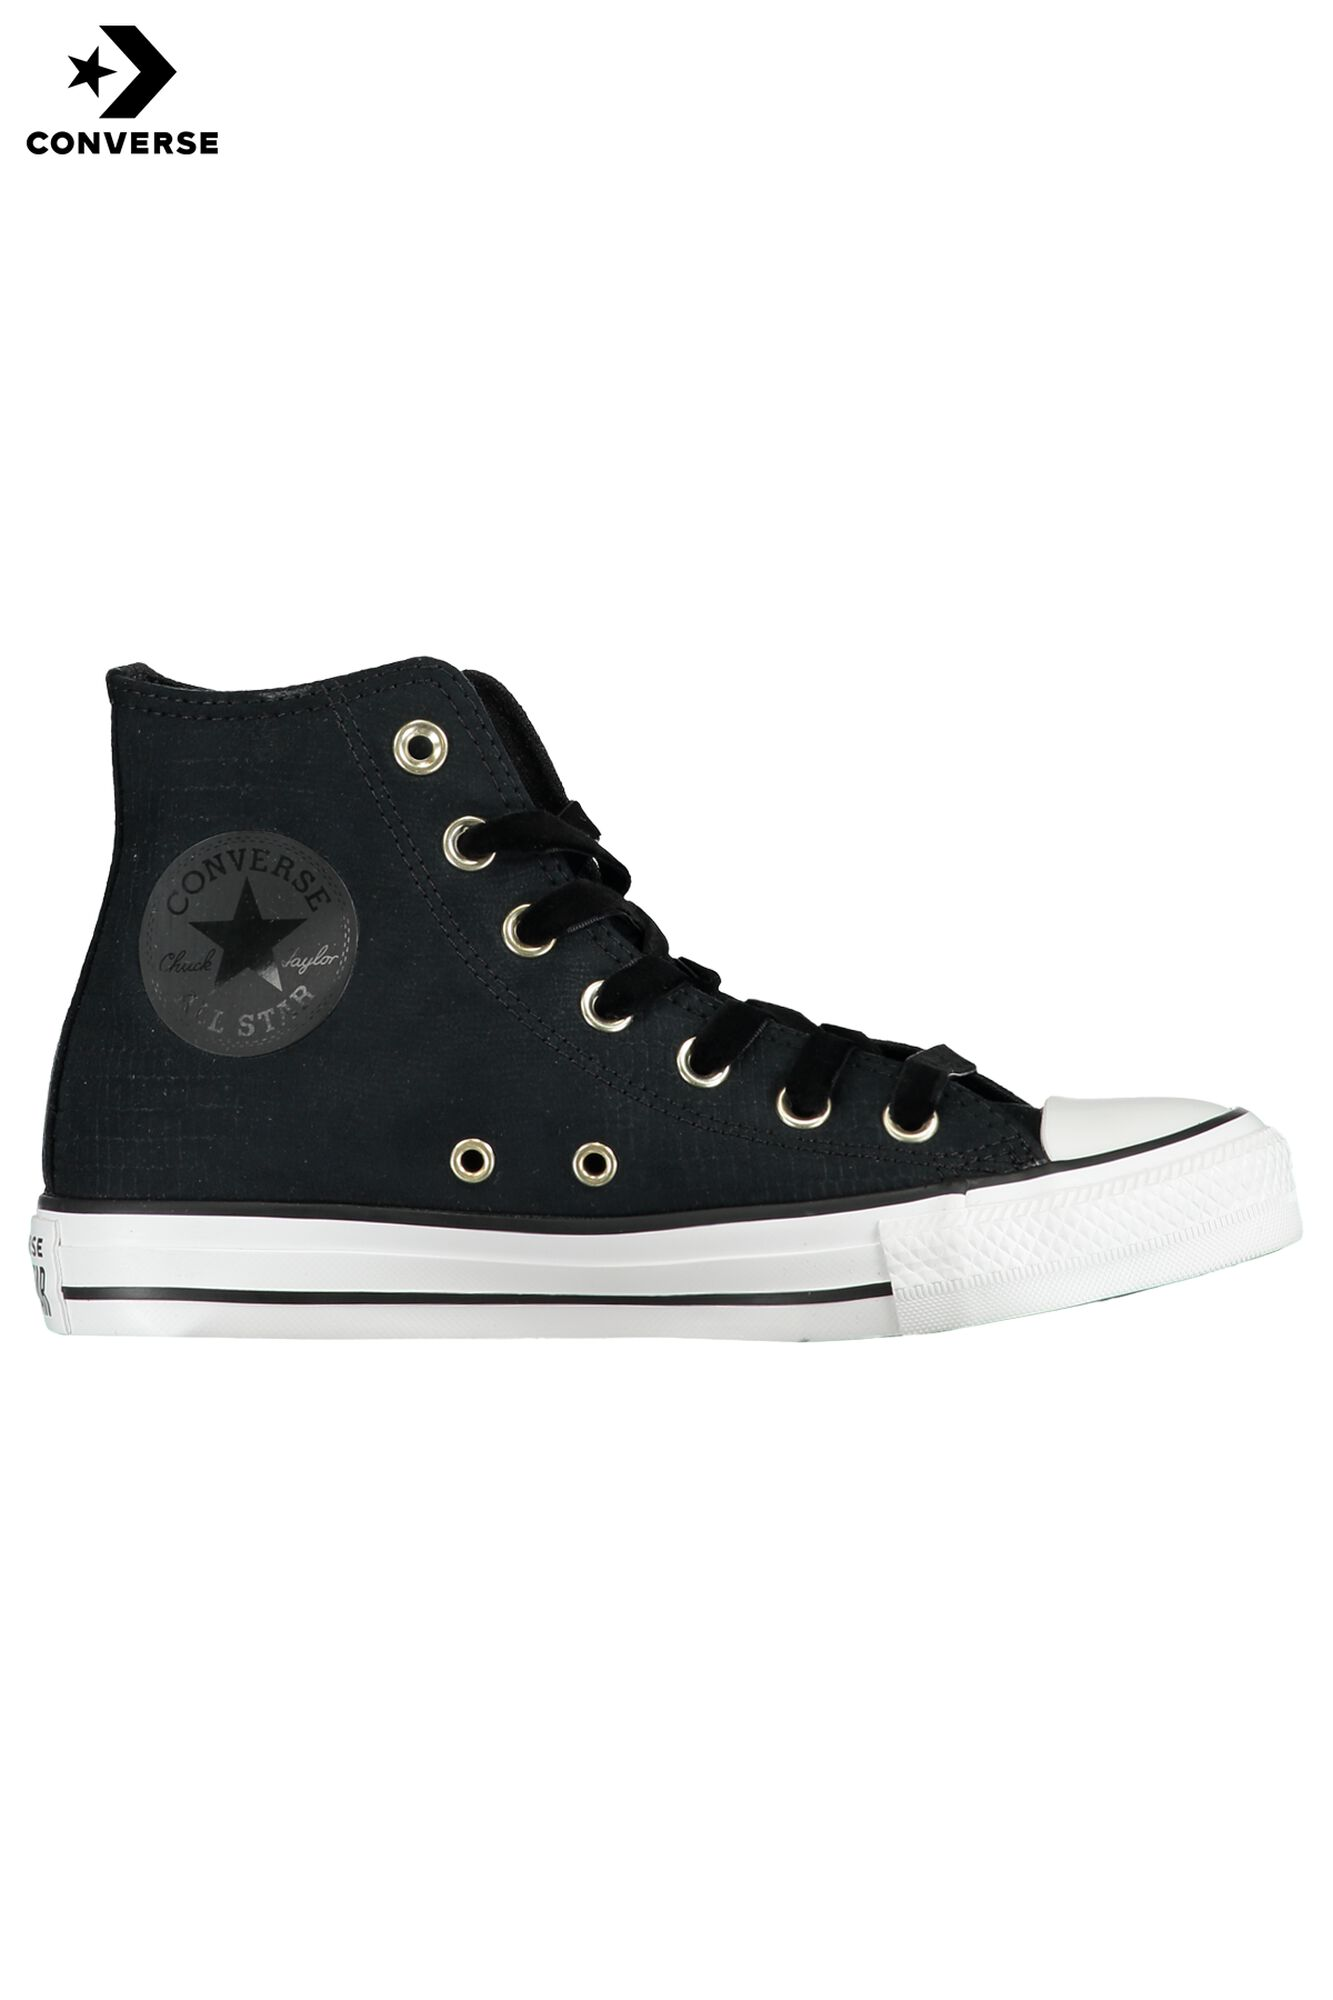 27ee5b3865a1 Women Converse All Stars Chuck Taylor- HI Black Buy Online